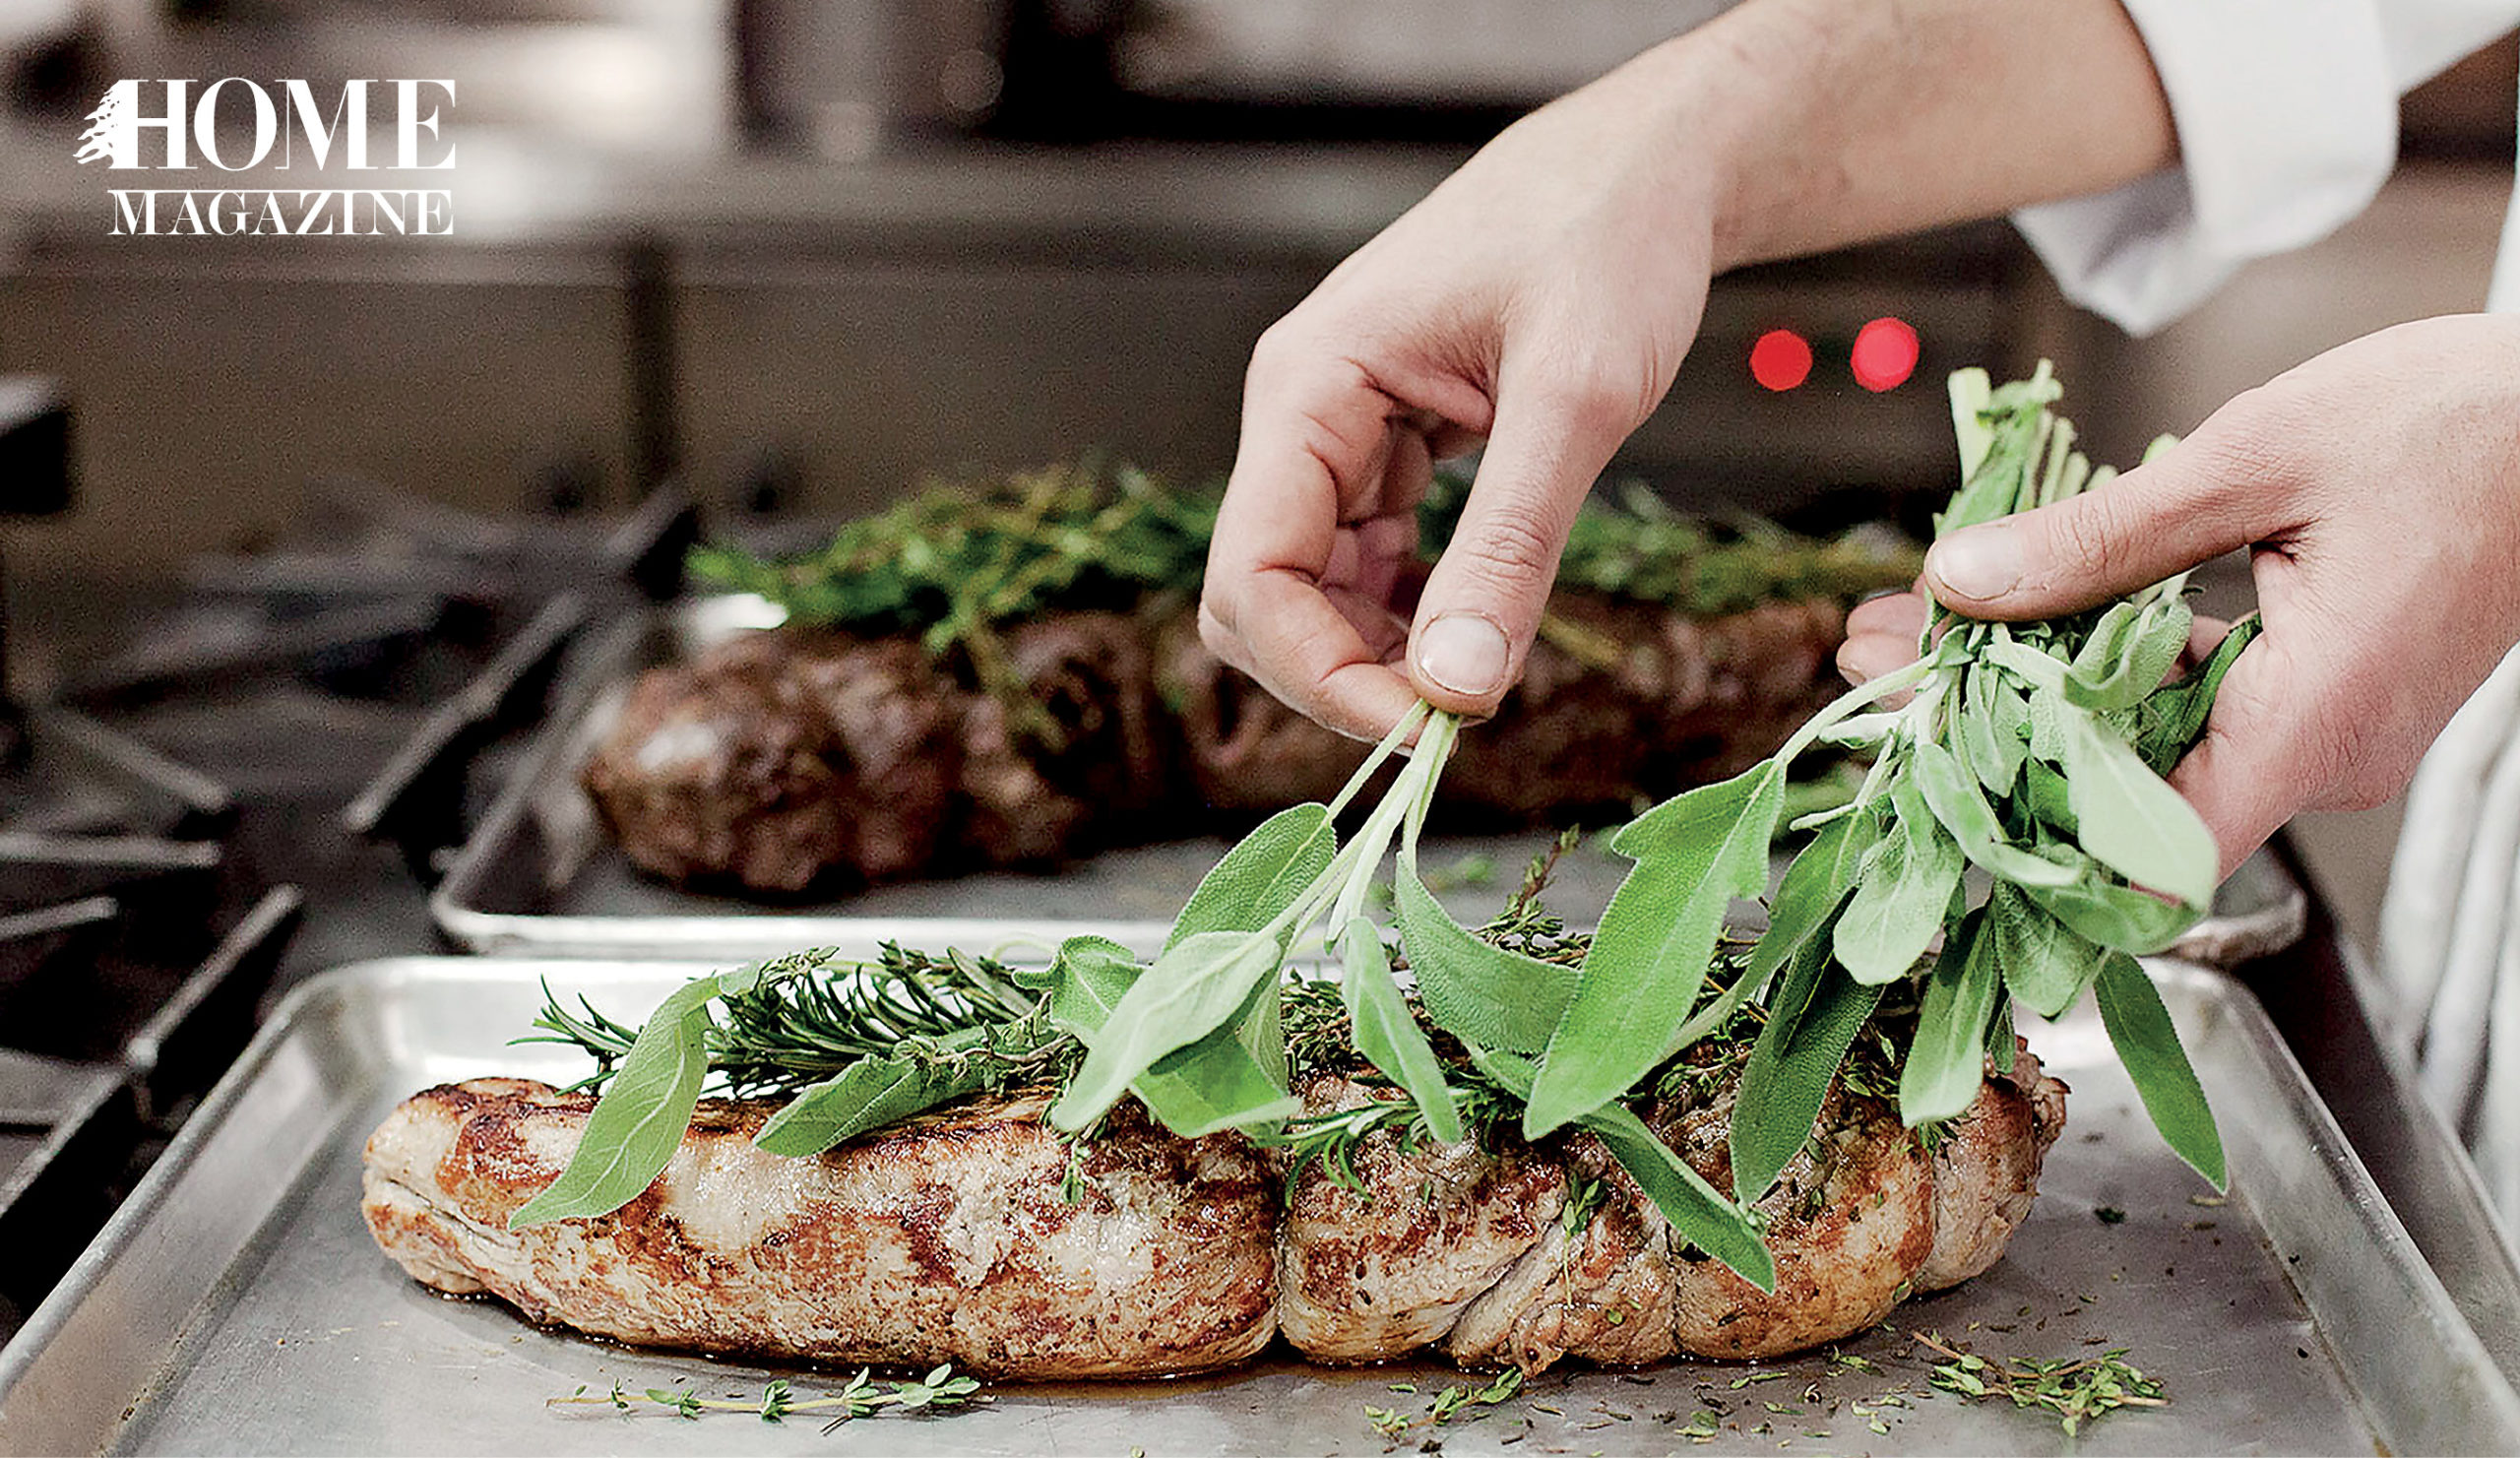 Chicken breast with green herbs